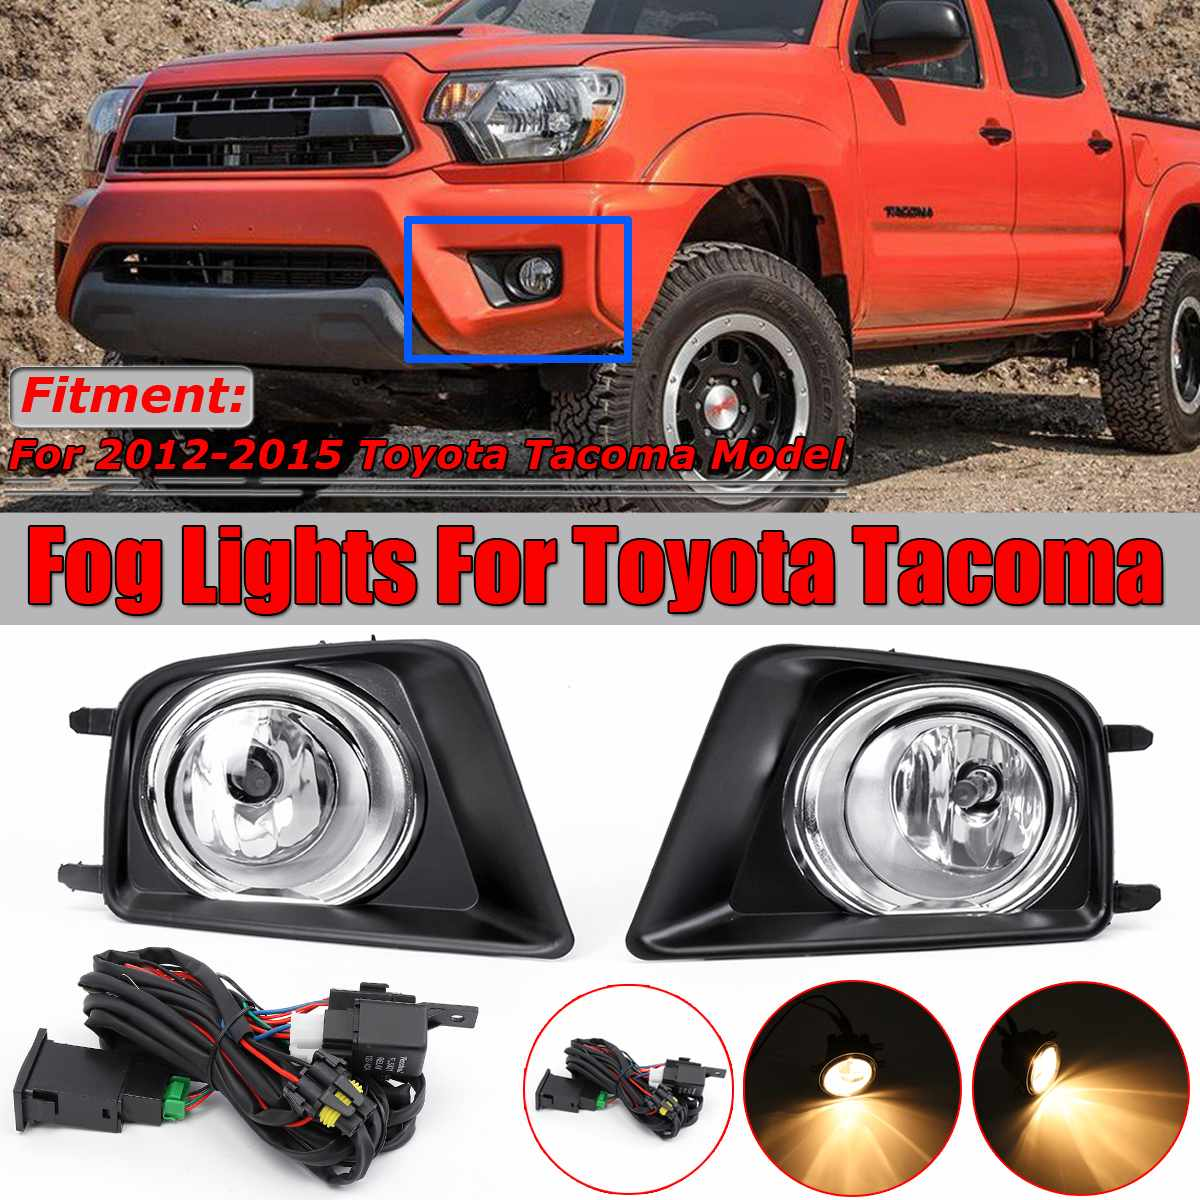 High Quality 3 Type For Toyota Tacoma 2012 2015 Car Fog Light Lamp For Cars A Pair Car Front Fog Light Lamp Assembly 81481 0402